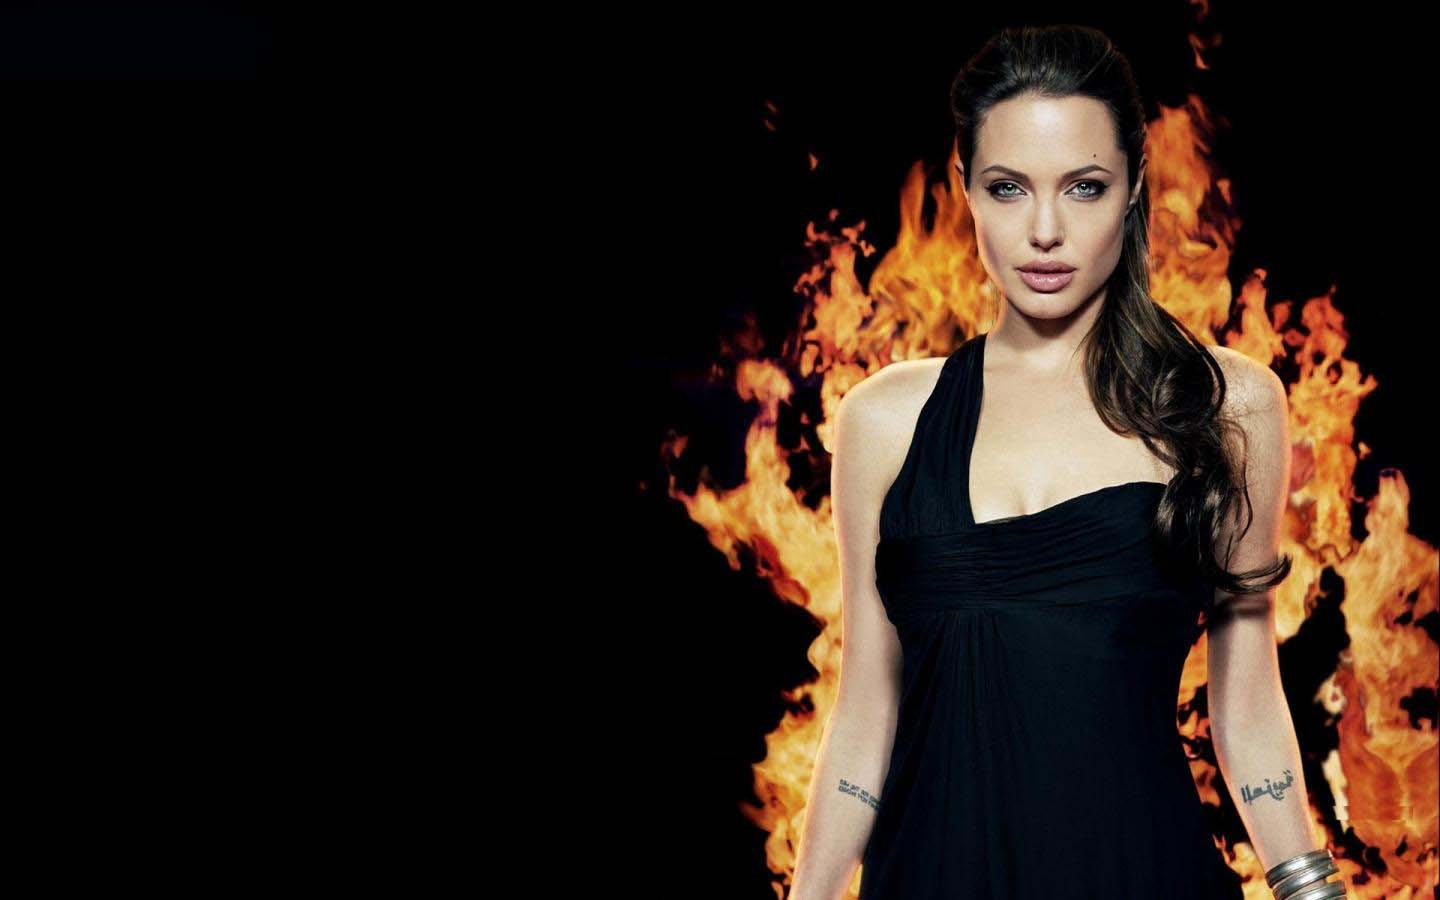 angelina jolie lovely hd hot wallpapers 2013 hollywood